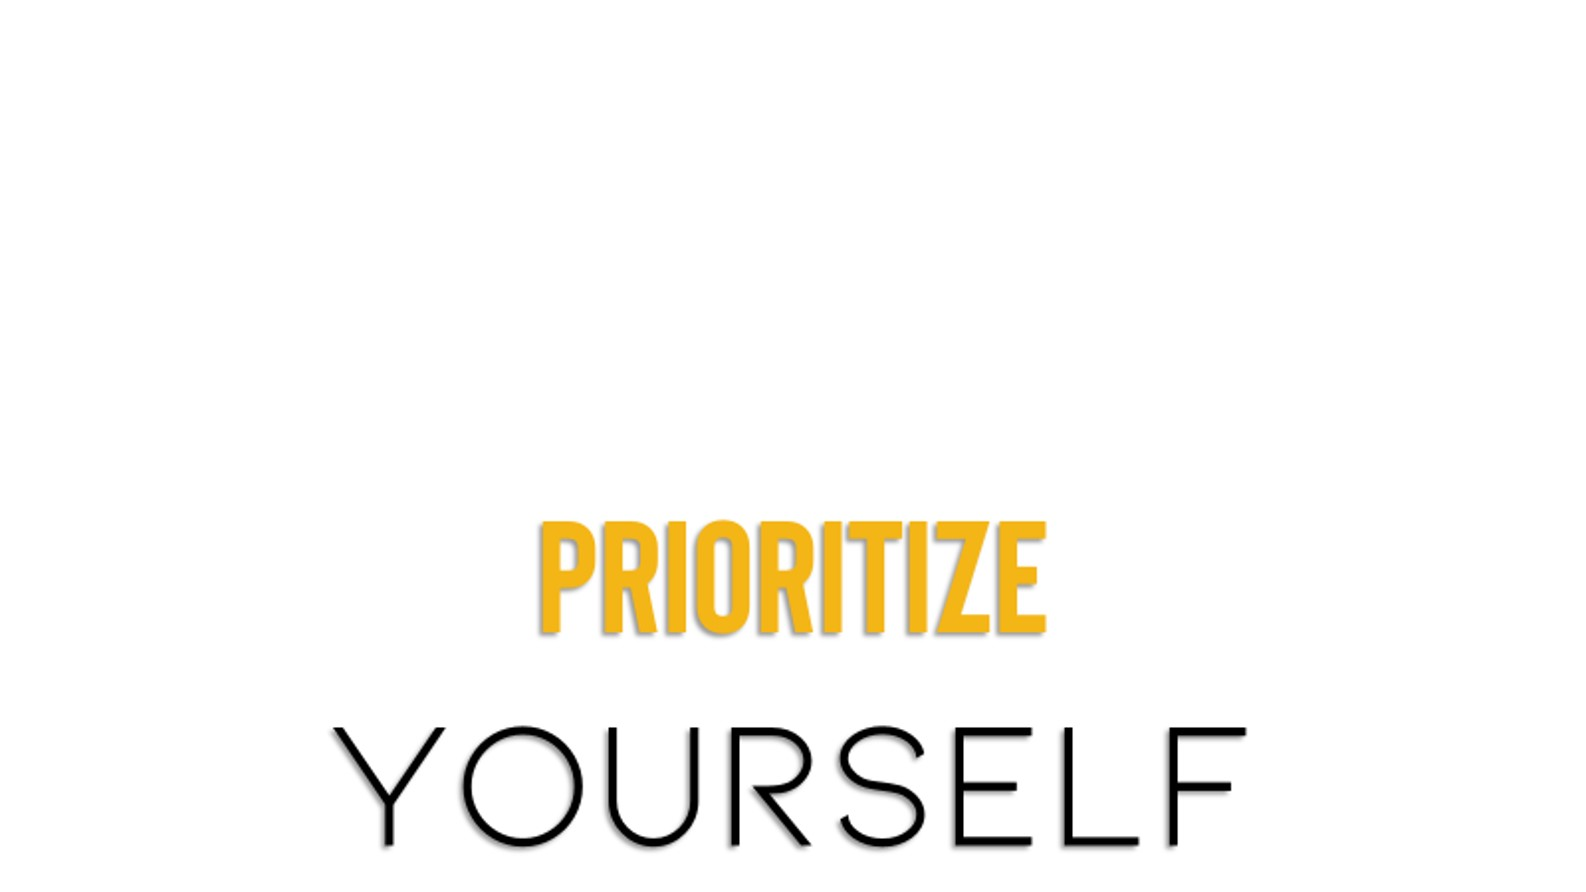 Prioritize yourself